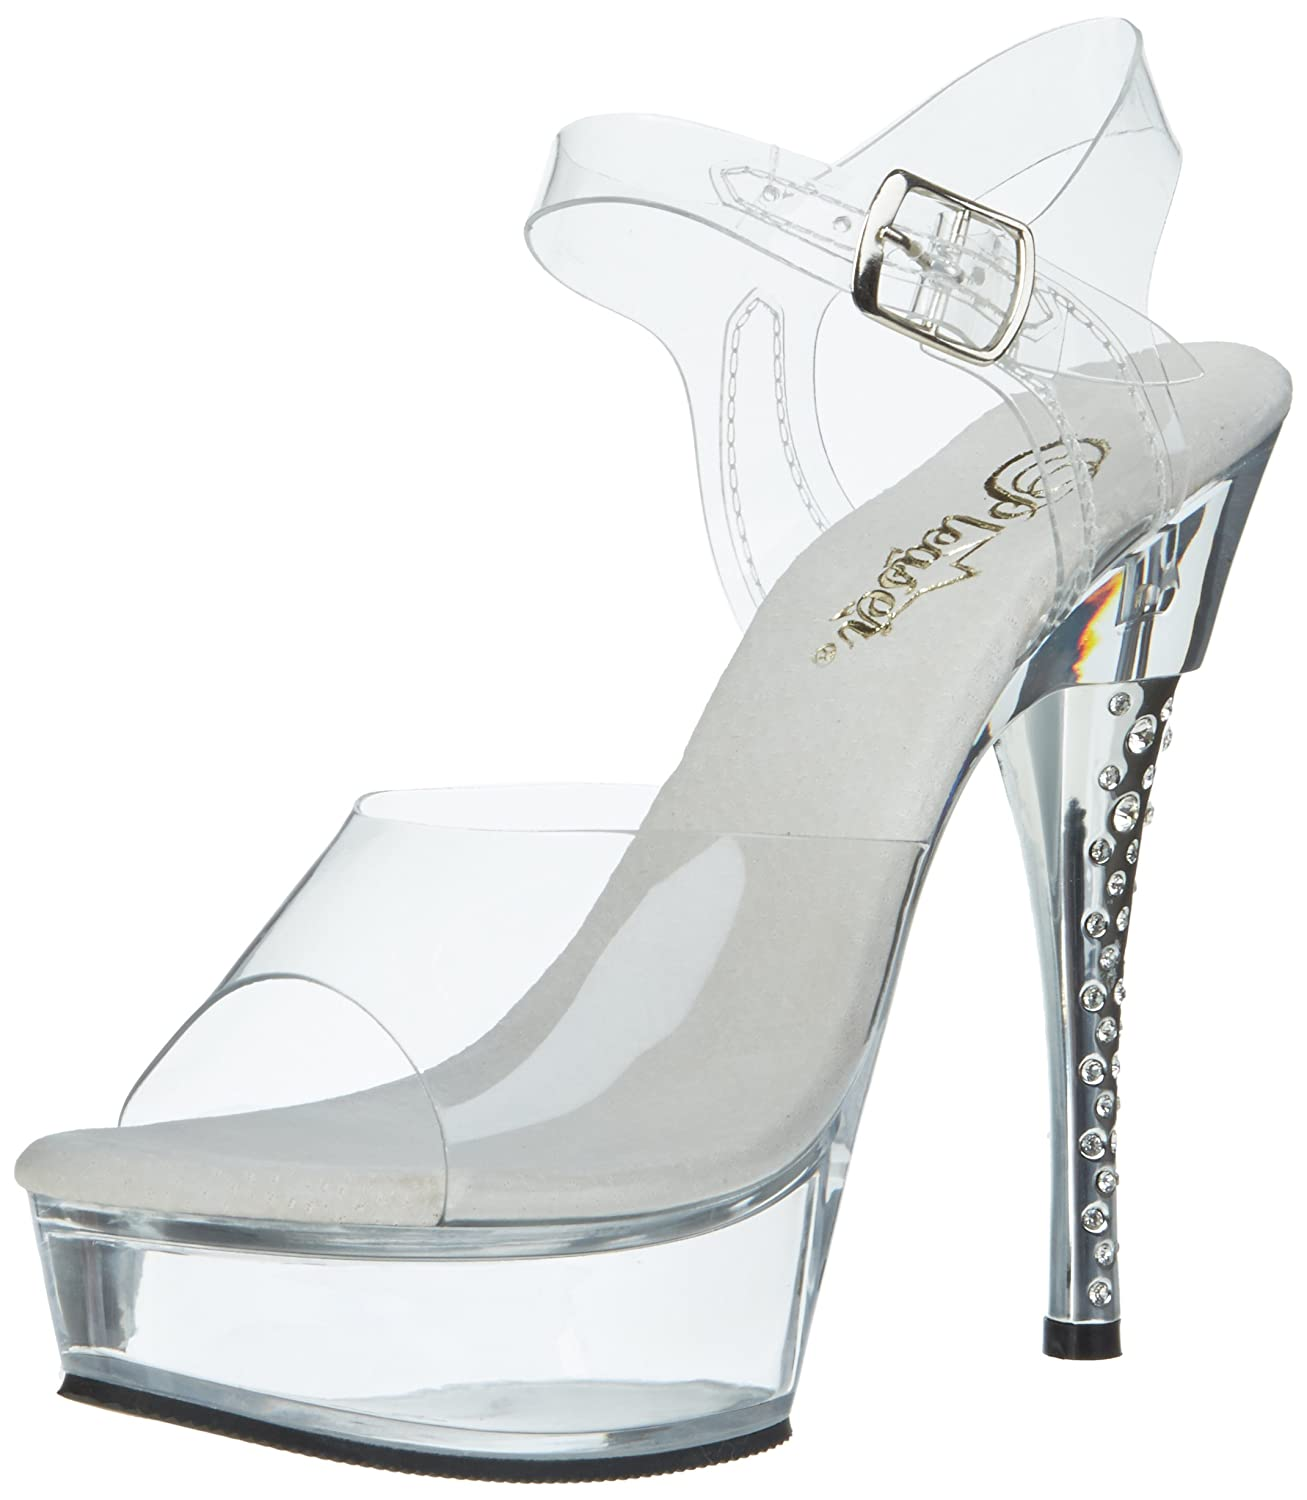 Pleaser Women's Diamond-608 Platform Sandal B002LHX8I6 5 B(M) US|Clear